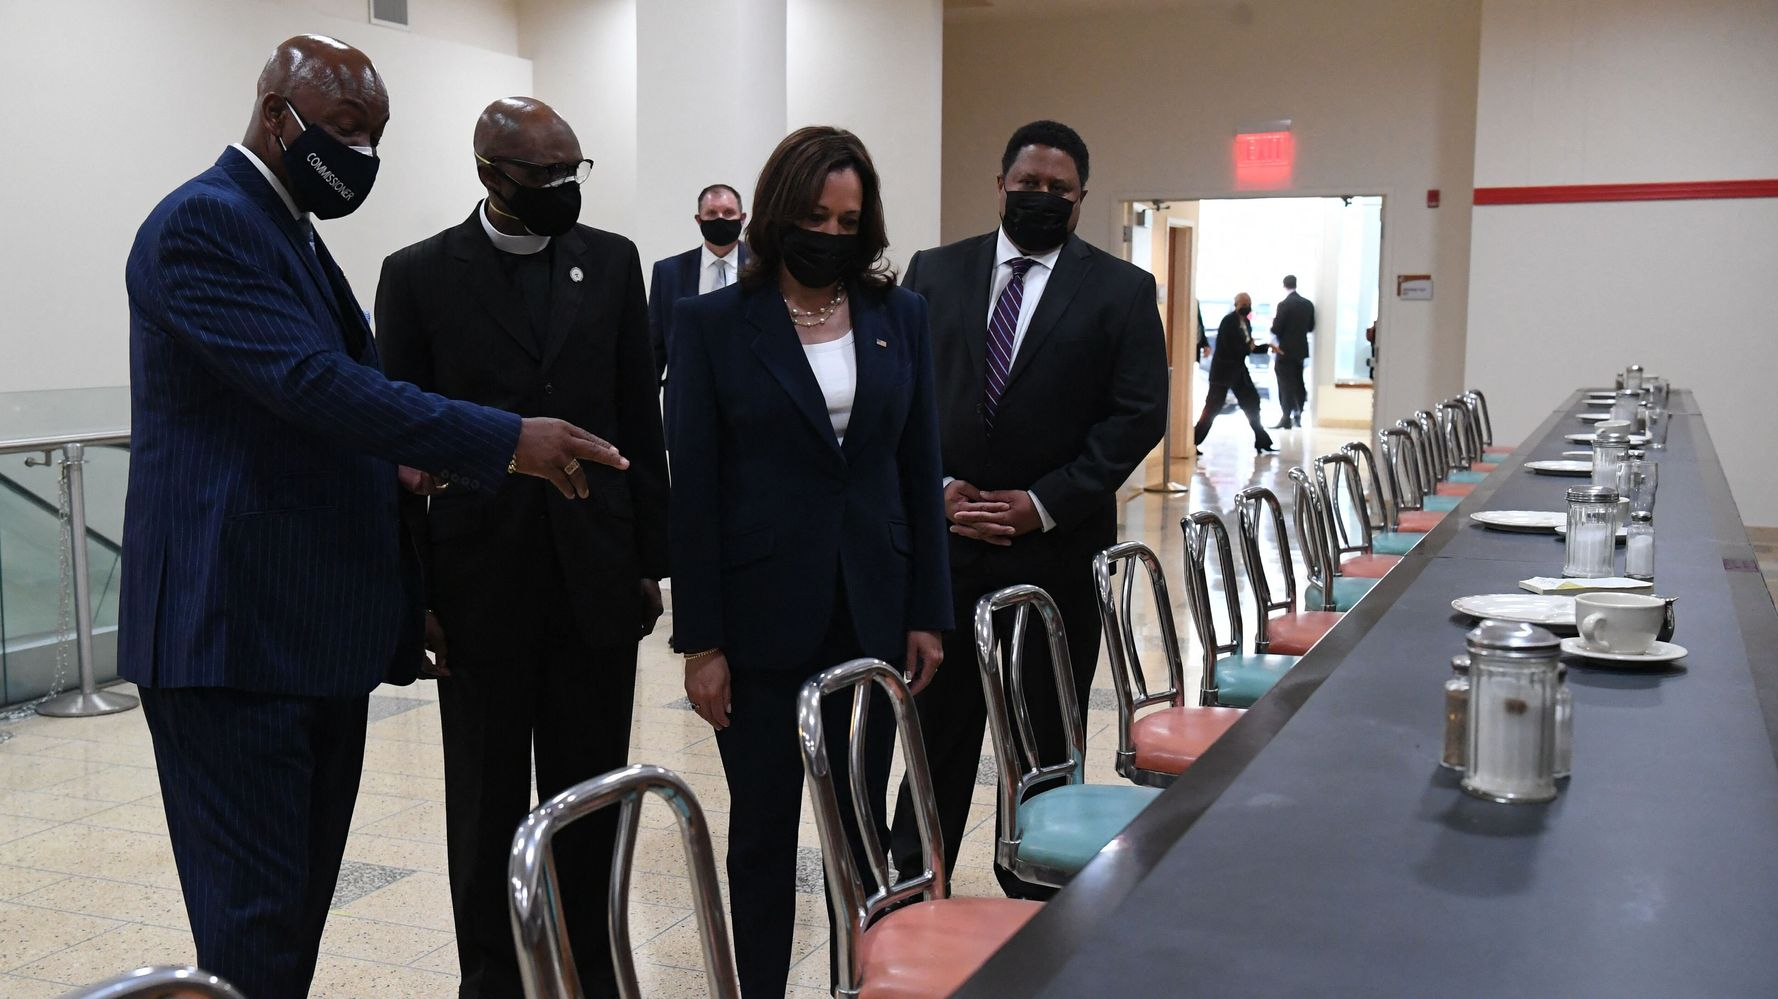 Kamala Harris Visits Historic Woolworth's Lunch Counter Where Sit-In Movement Began